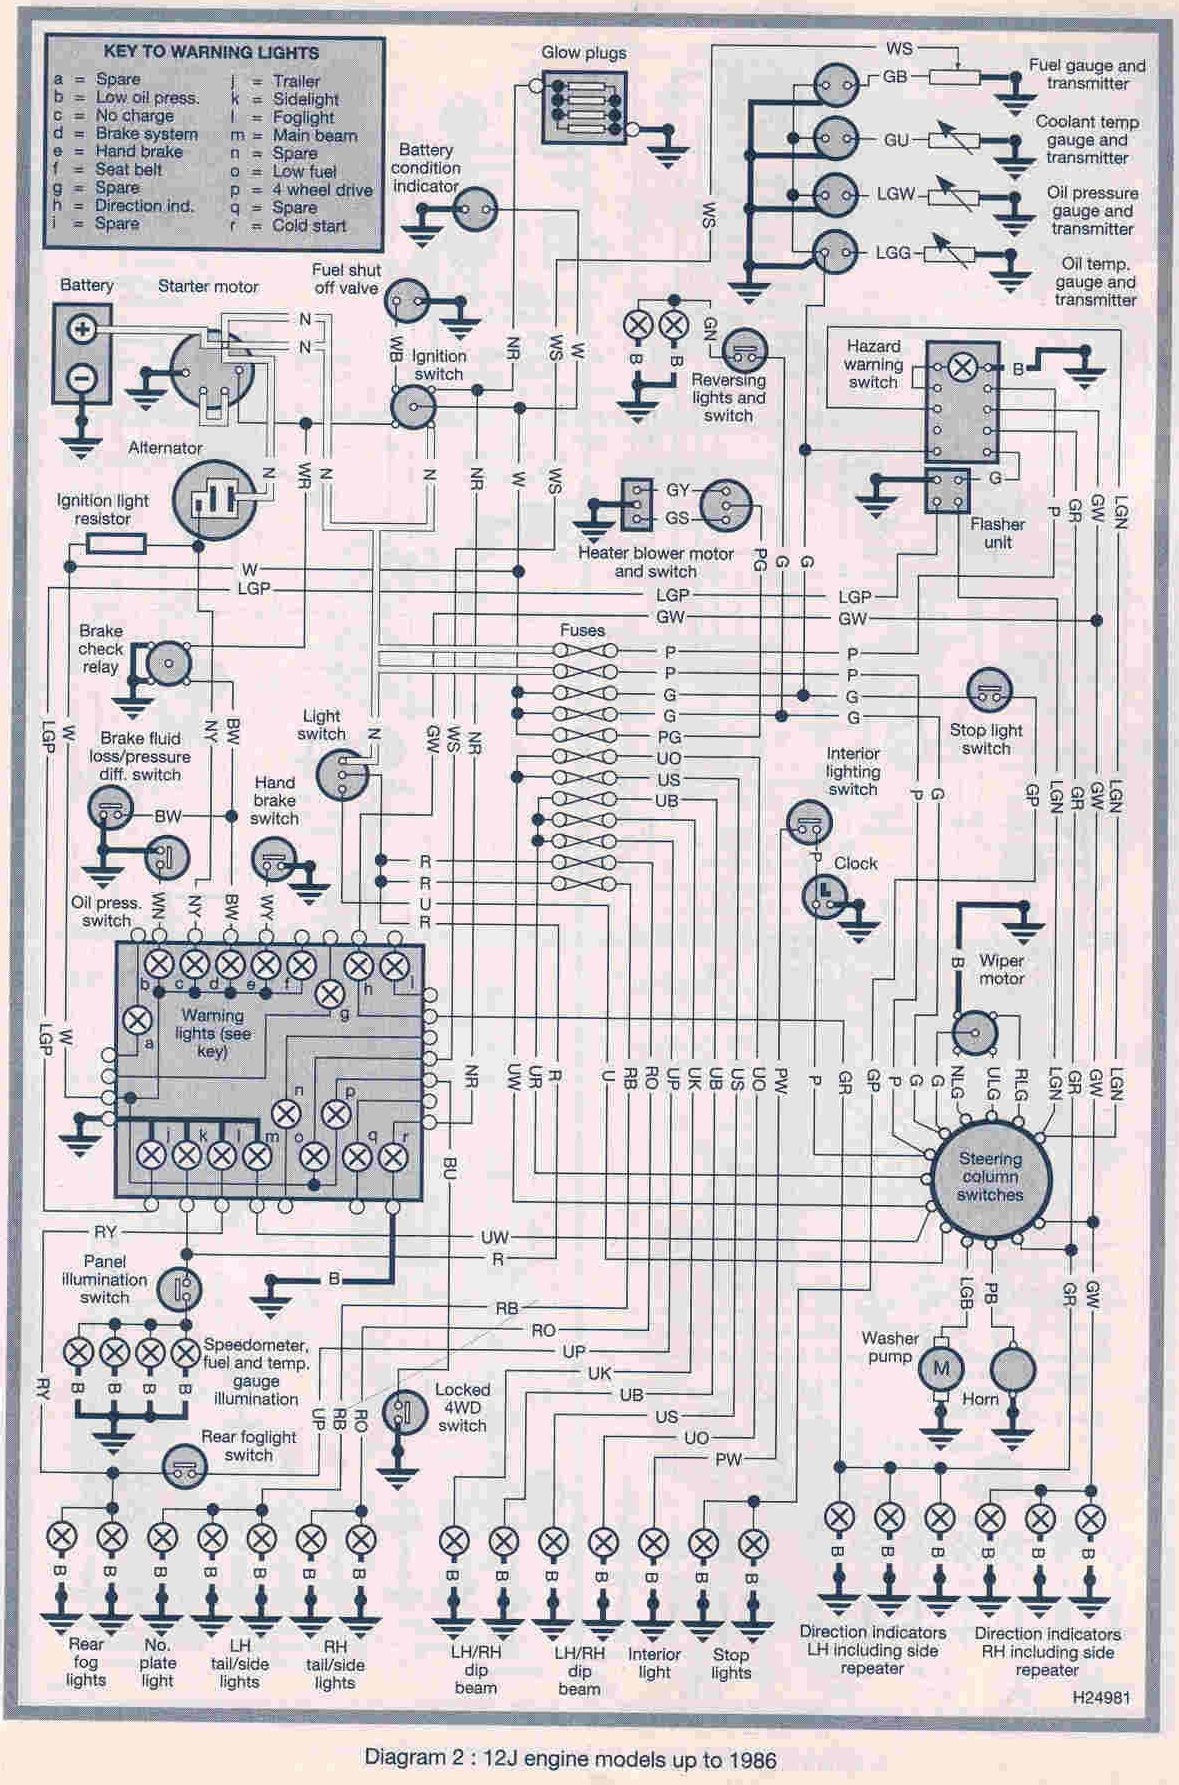 Help Requested With 1990 V8 Wiring Loom Diagrams - Defender Forum - Lr4x4